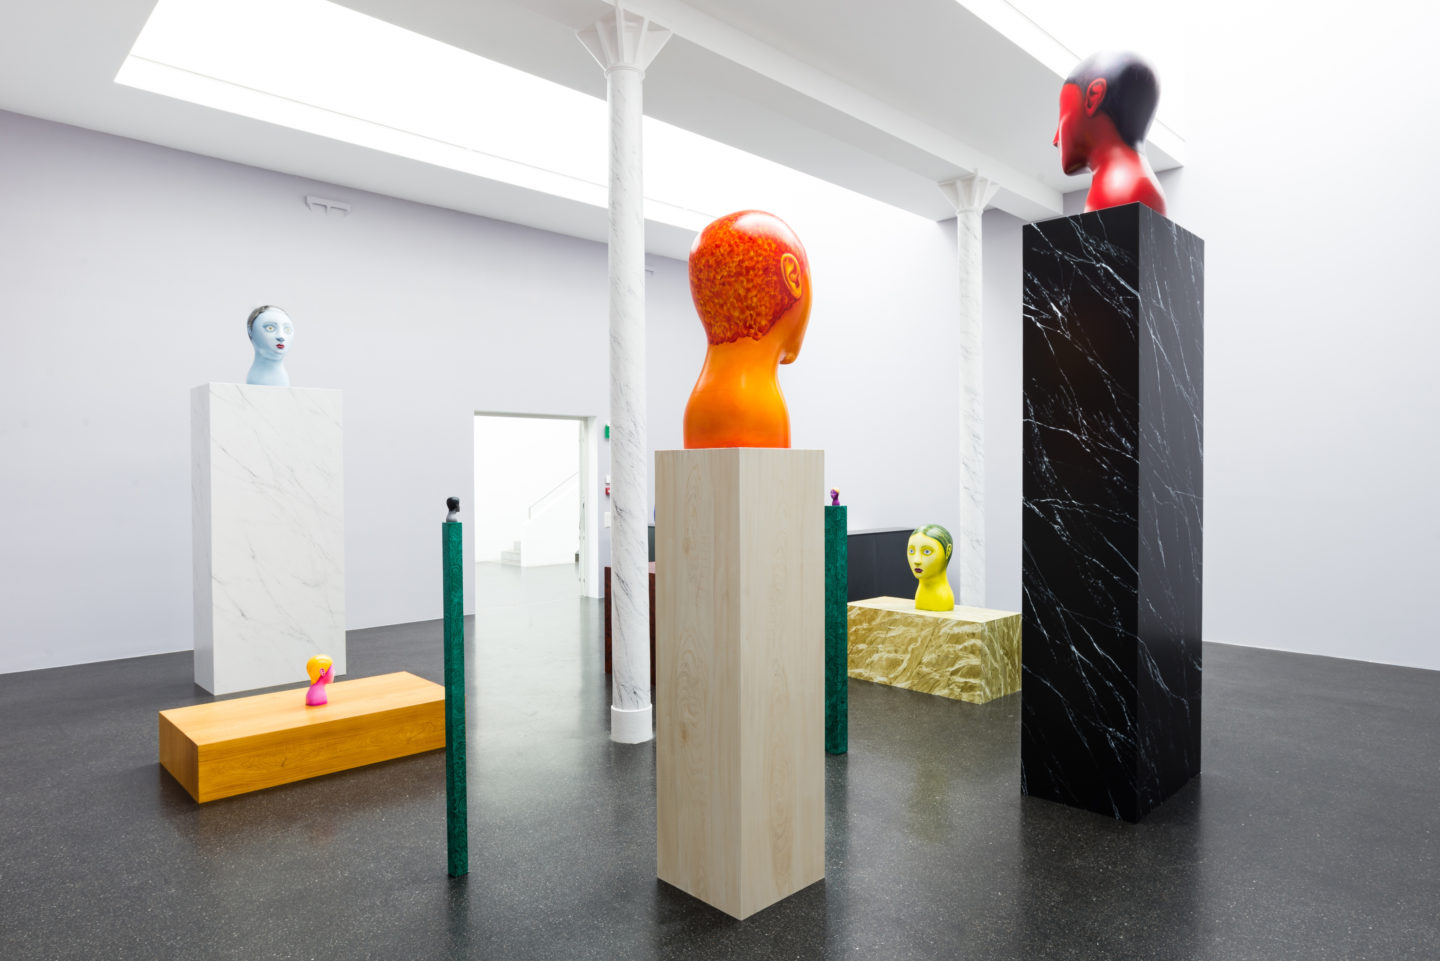 Exhibition View Nicolas Party «Heads» at Galerie Gregor Staiger, Zurich, 2018 / Courtesy: the artist and Galerie Gregor Staiger,  Zurich